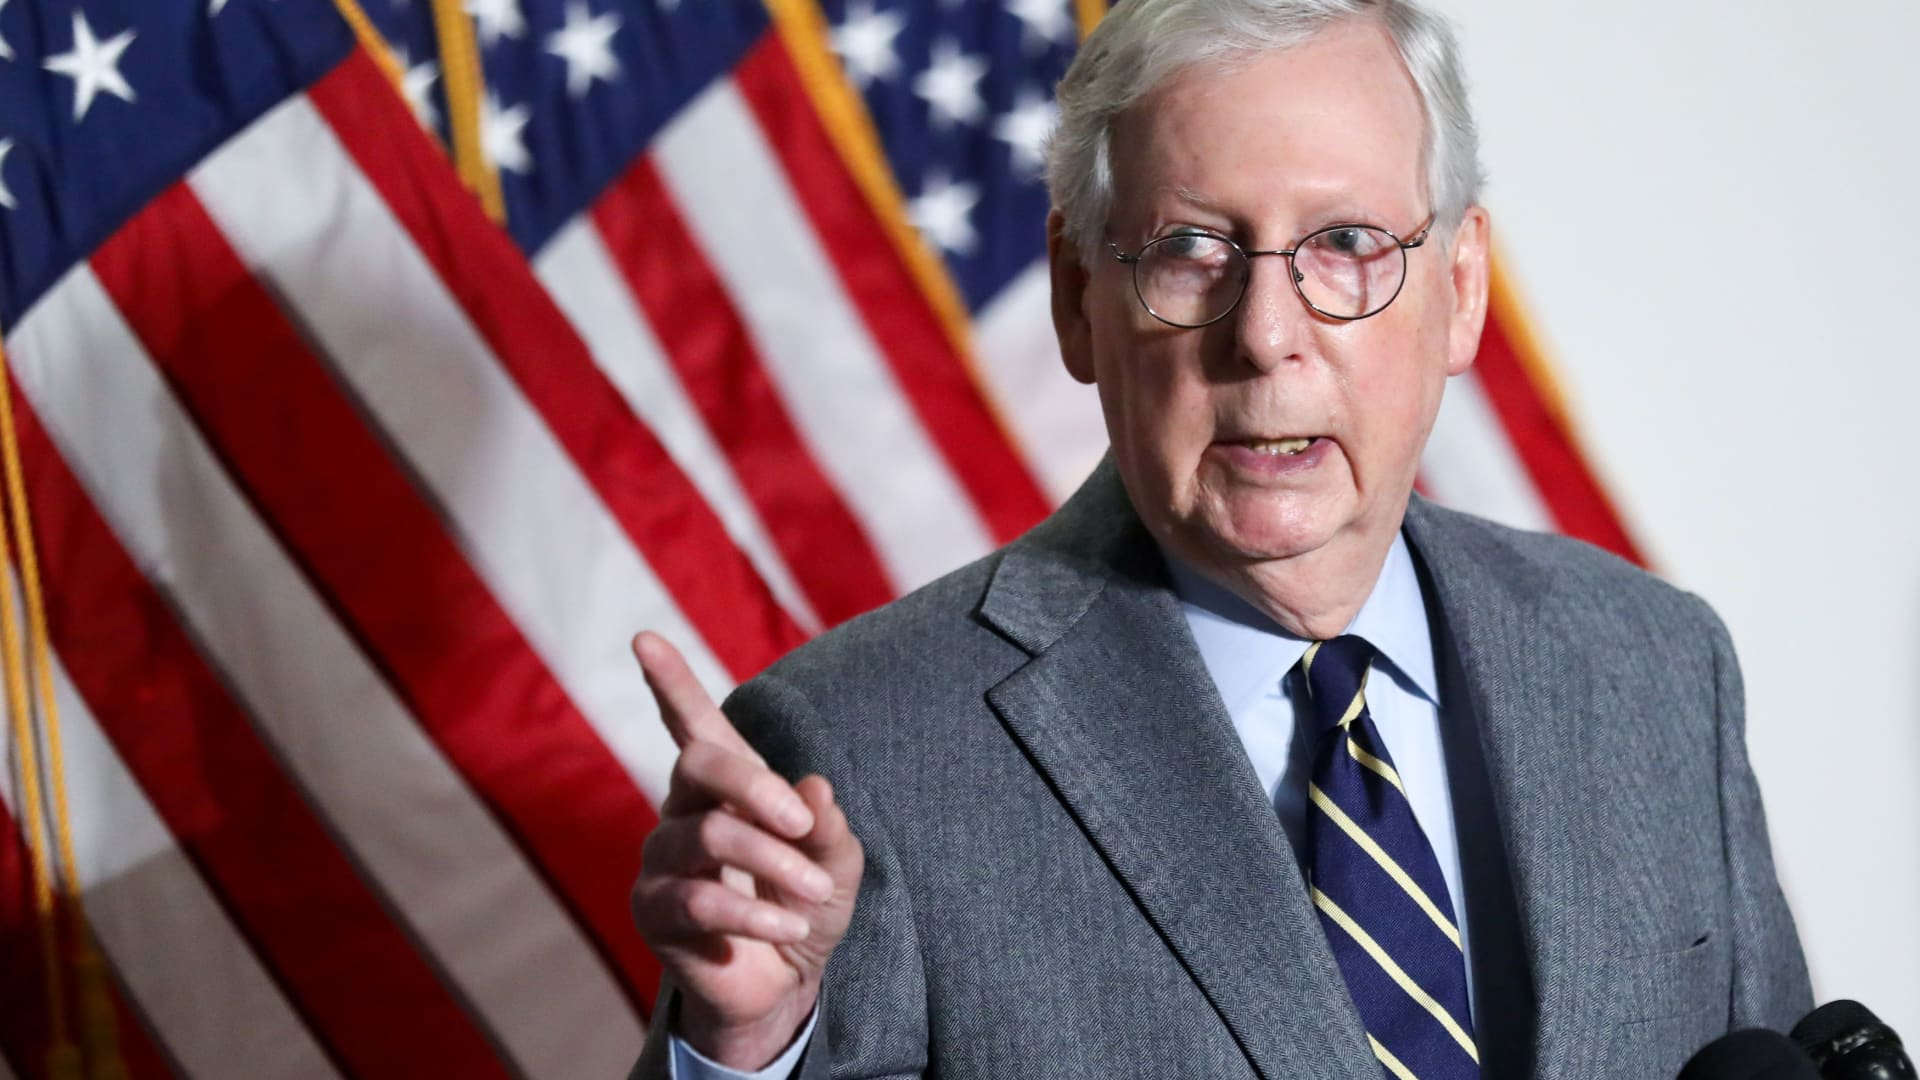 U.S. Senate Minority Leader Mitch McConnell (R-KY) speaks to reporters after the weekly Republican caucus policy luncheon on Capitol Hill in Washington, January 26, 2021.